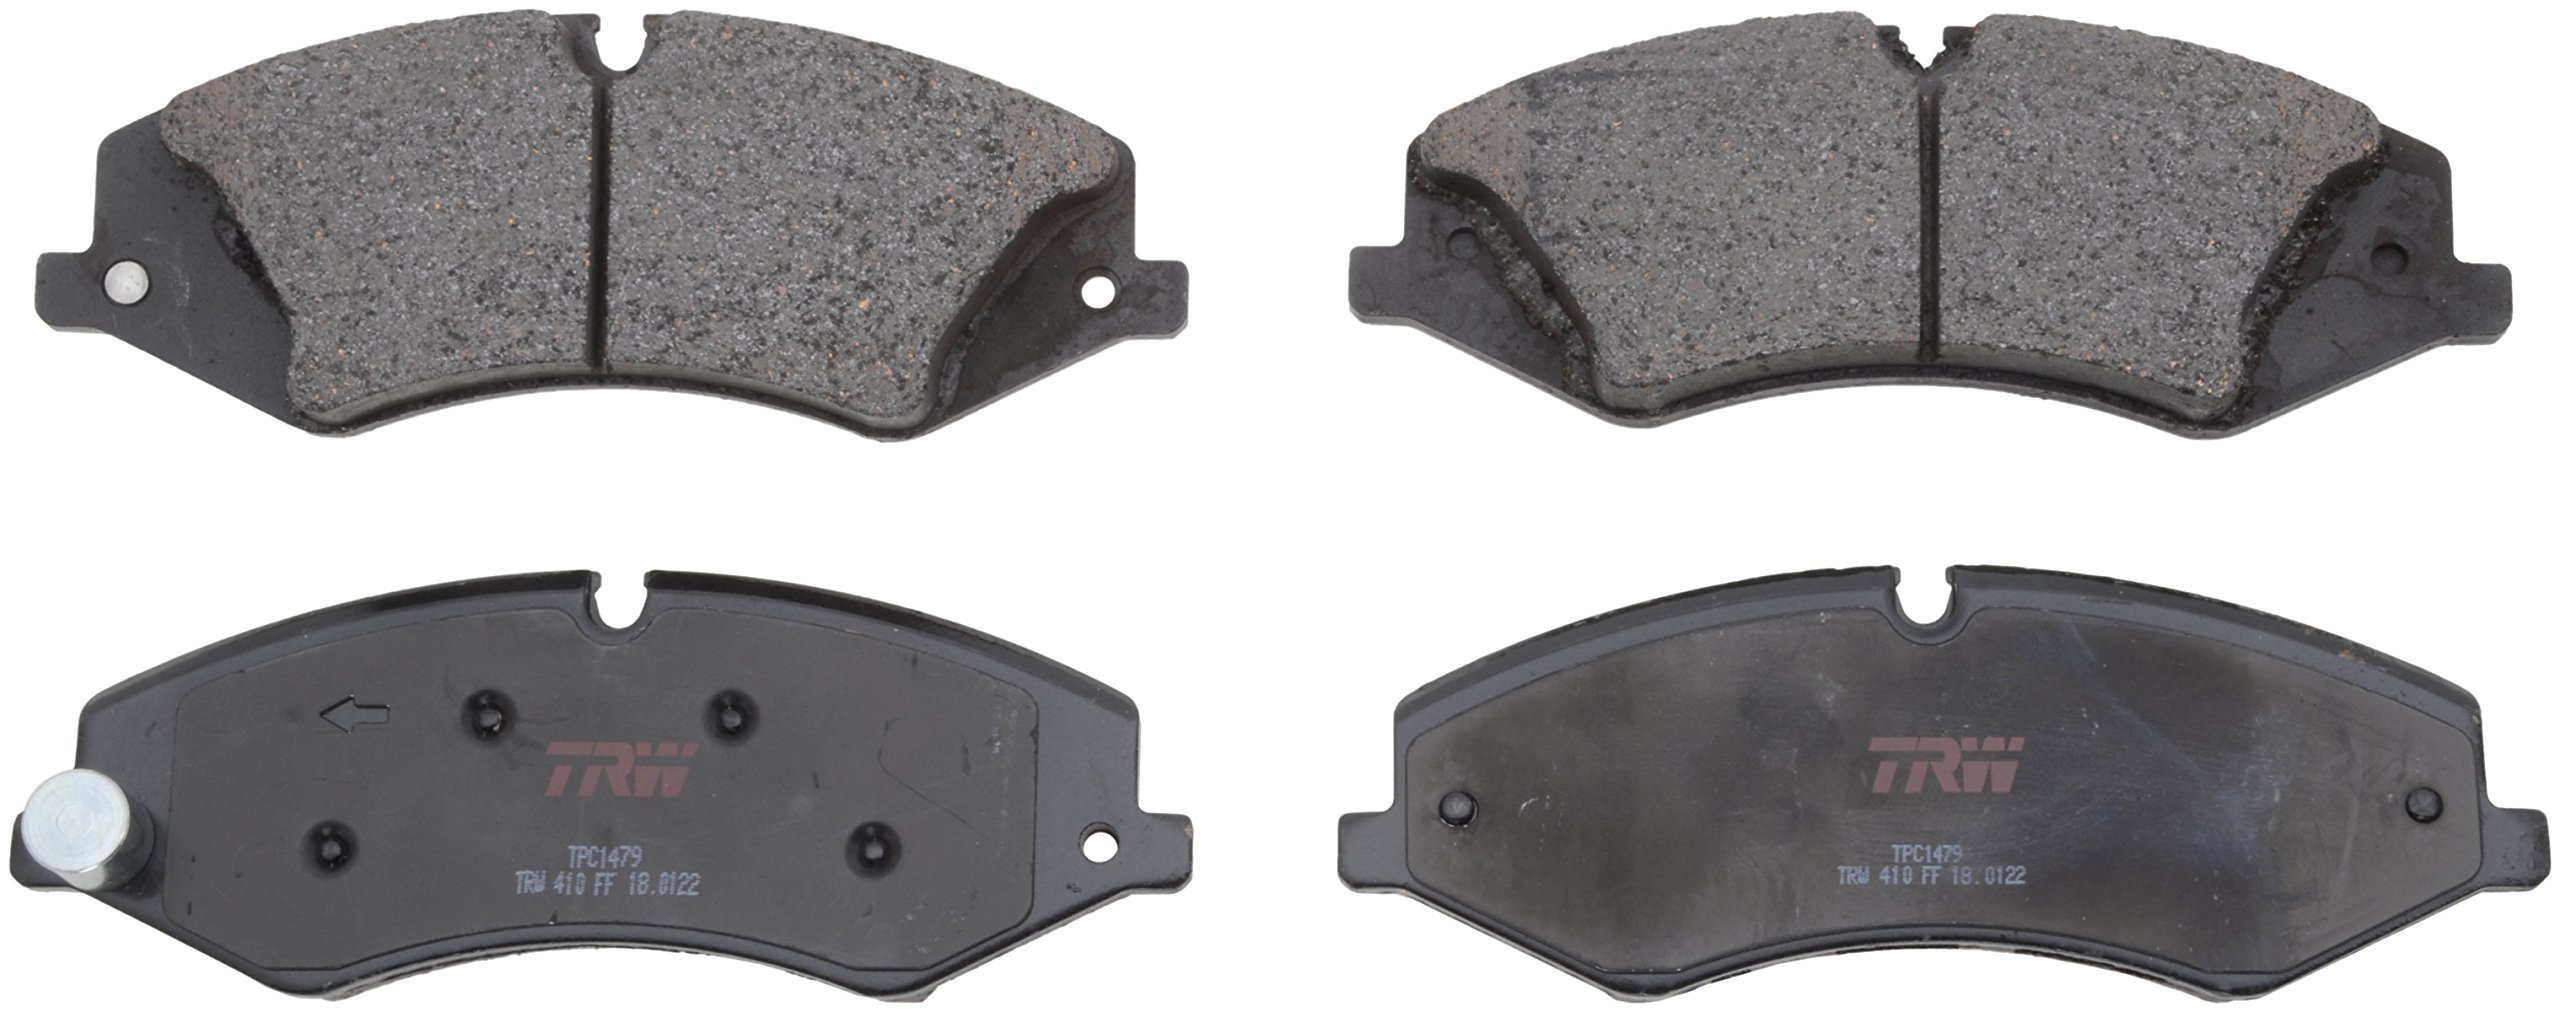 TRW Automotive TPC1479 Disc Brake Pad Set for Land Rover Range Rover Sport: 2010-2017 and other applications Front